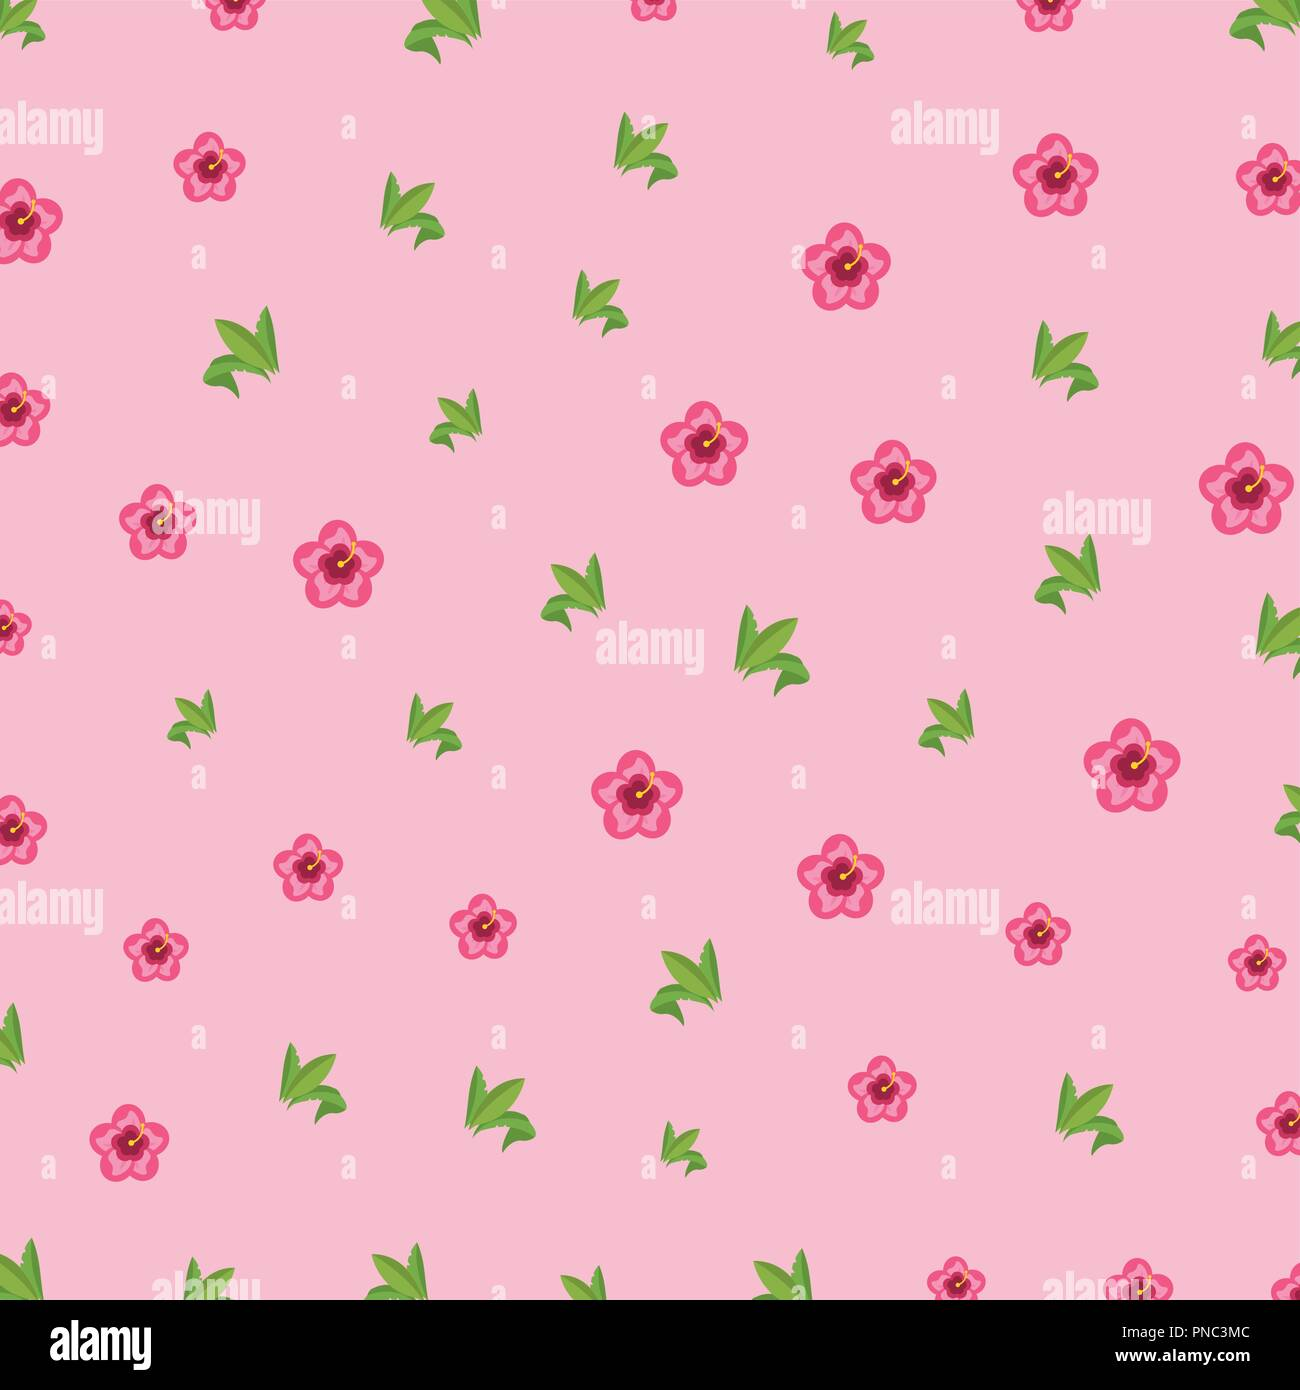 Floral pattern background - Stock Image